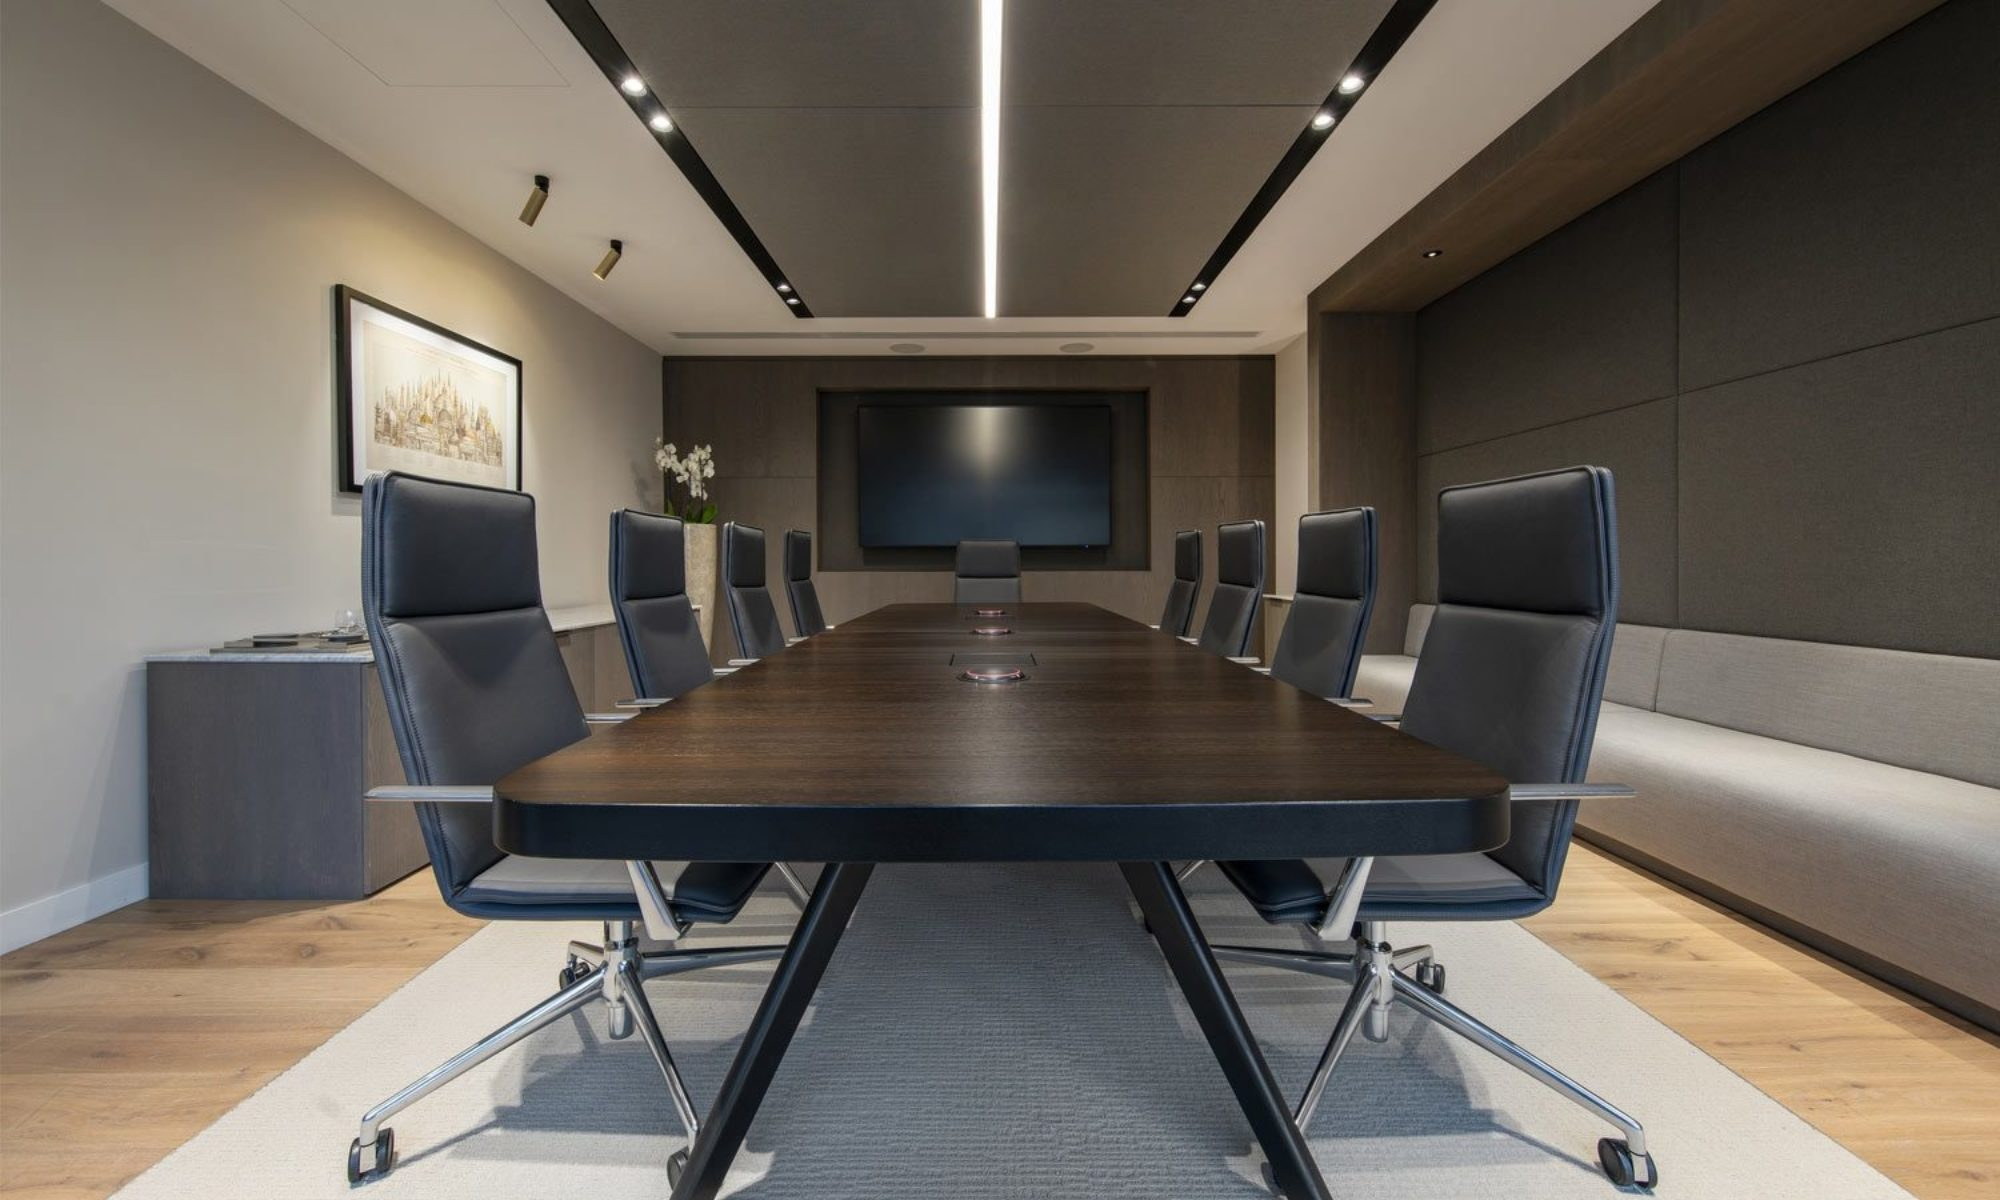 Dodge & Cox modern office boardroom with wooden flooring